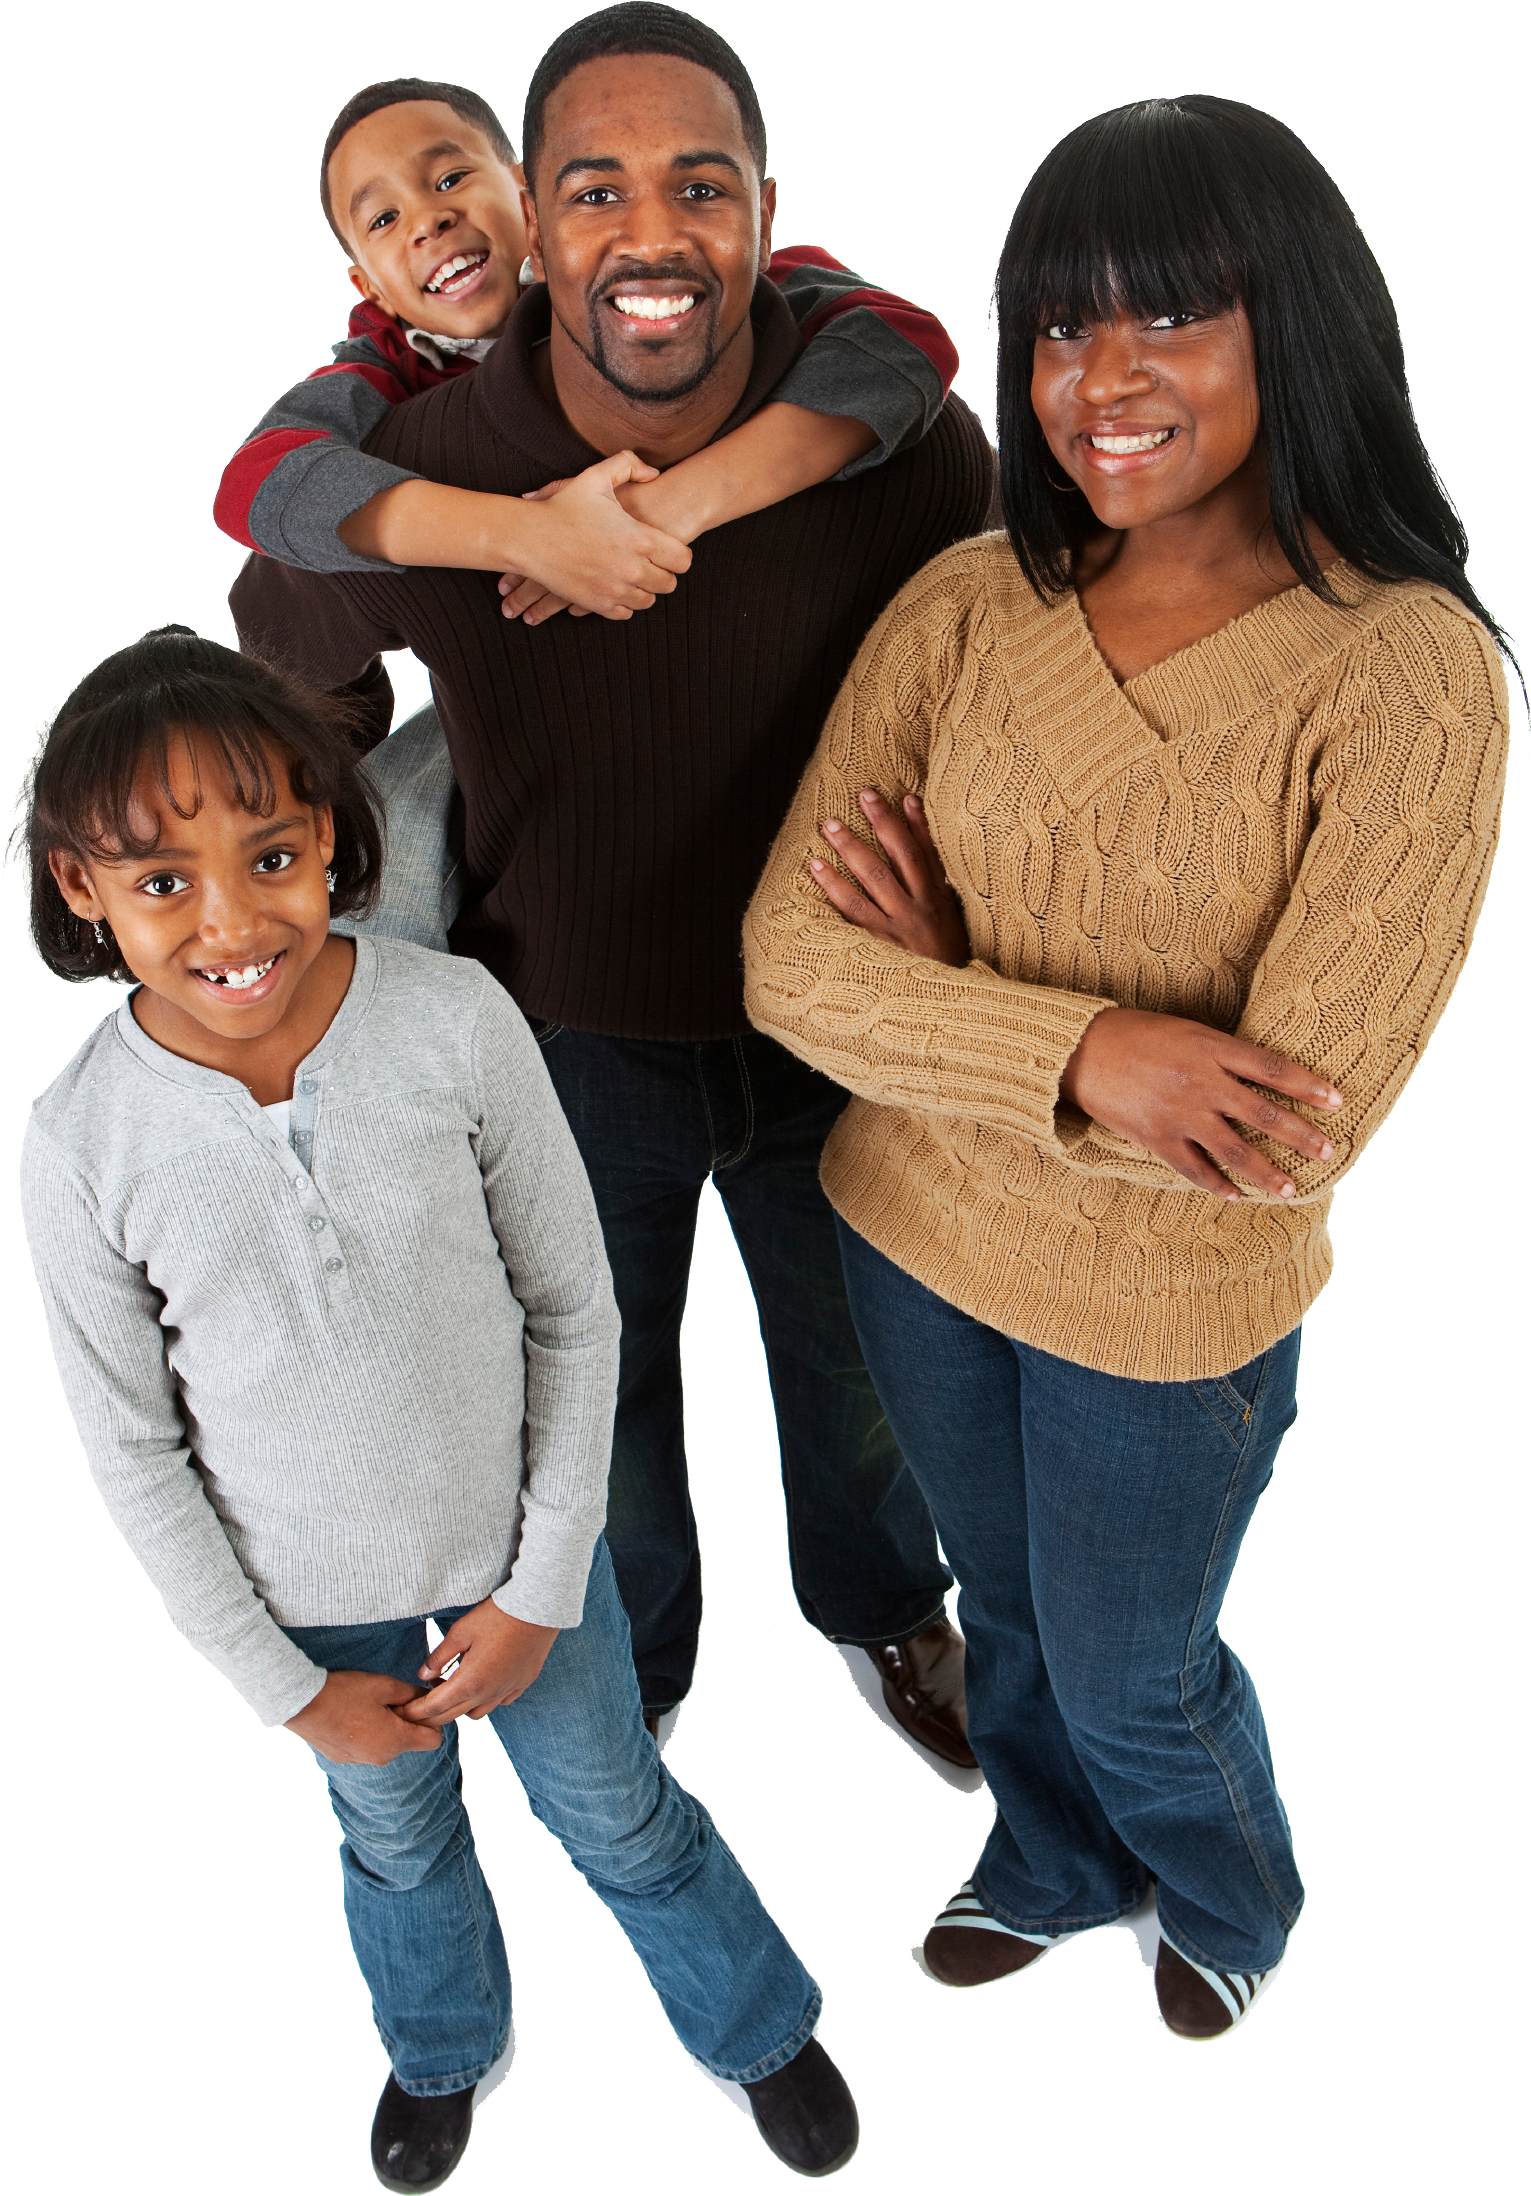 Black family png. Community access center inc